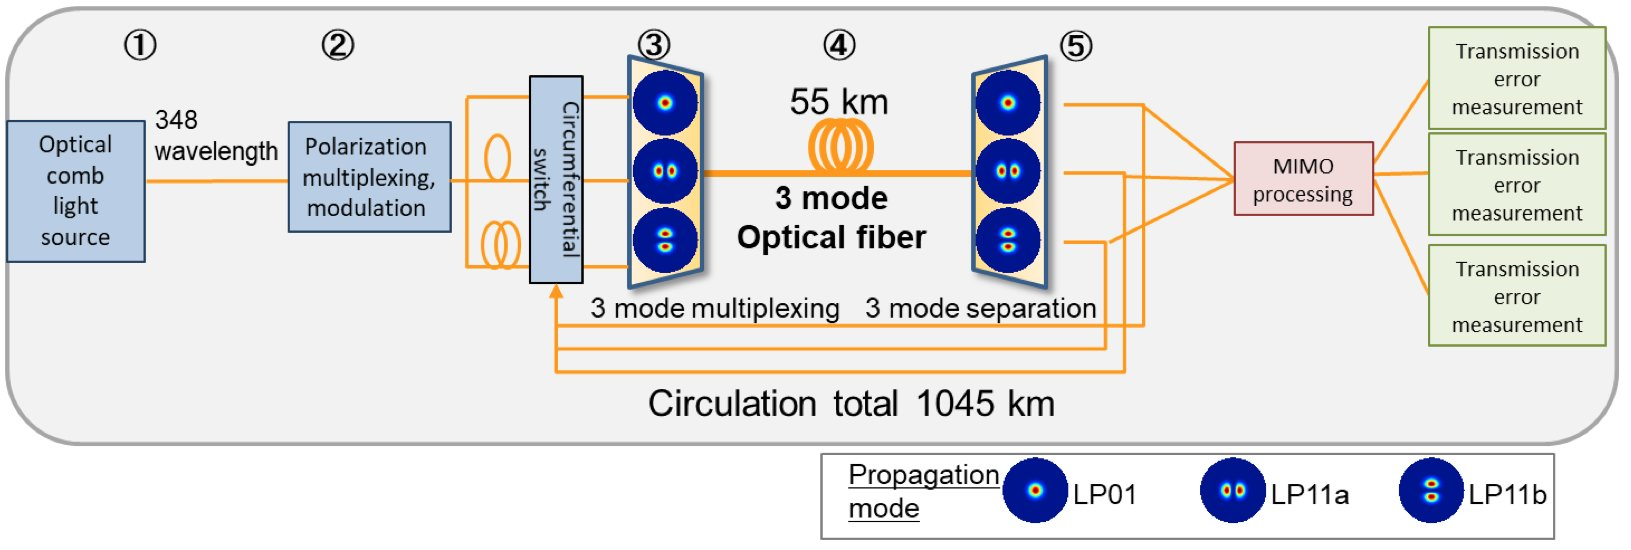 Fiber Optic Transmission Diagram Schematic Diagrams Wire Record Breaking Speed Reported Wiring